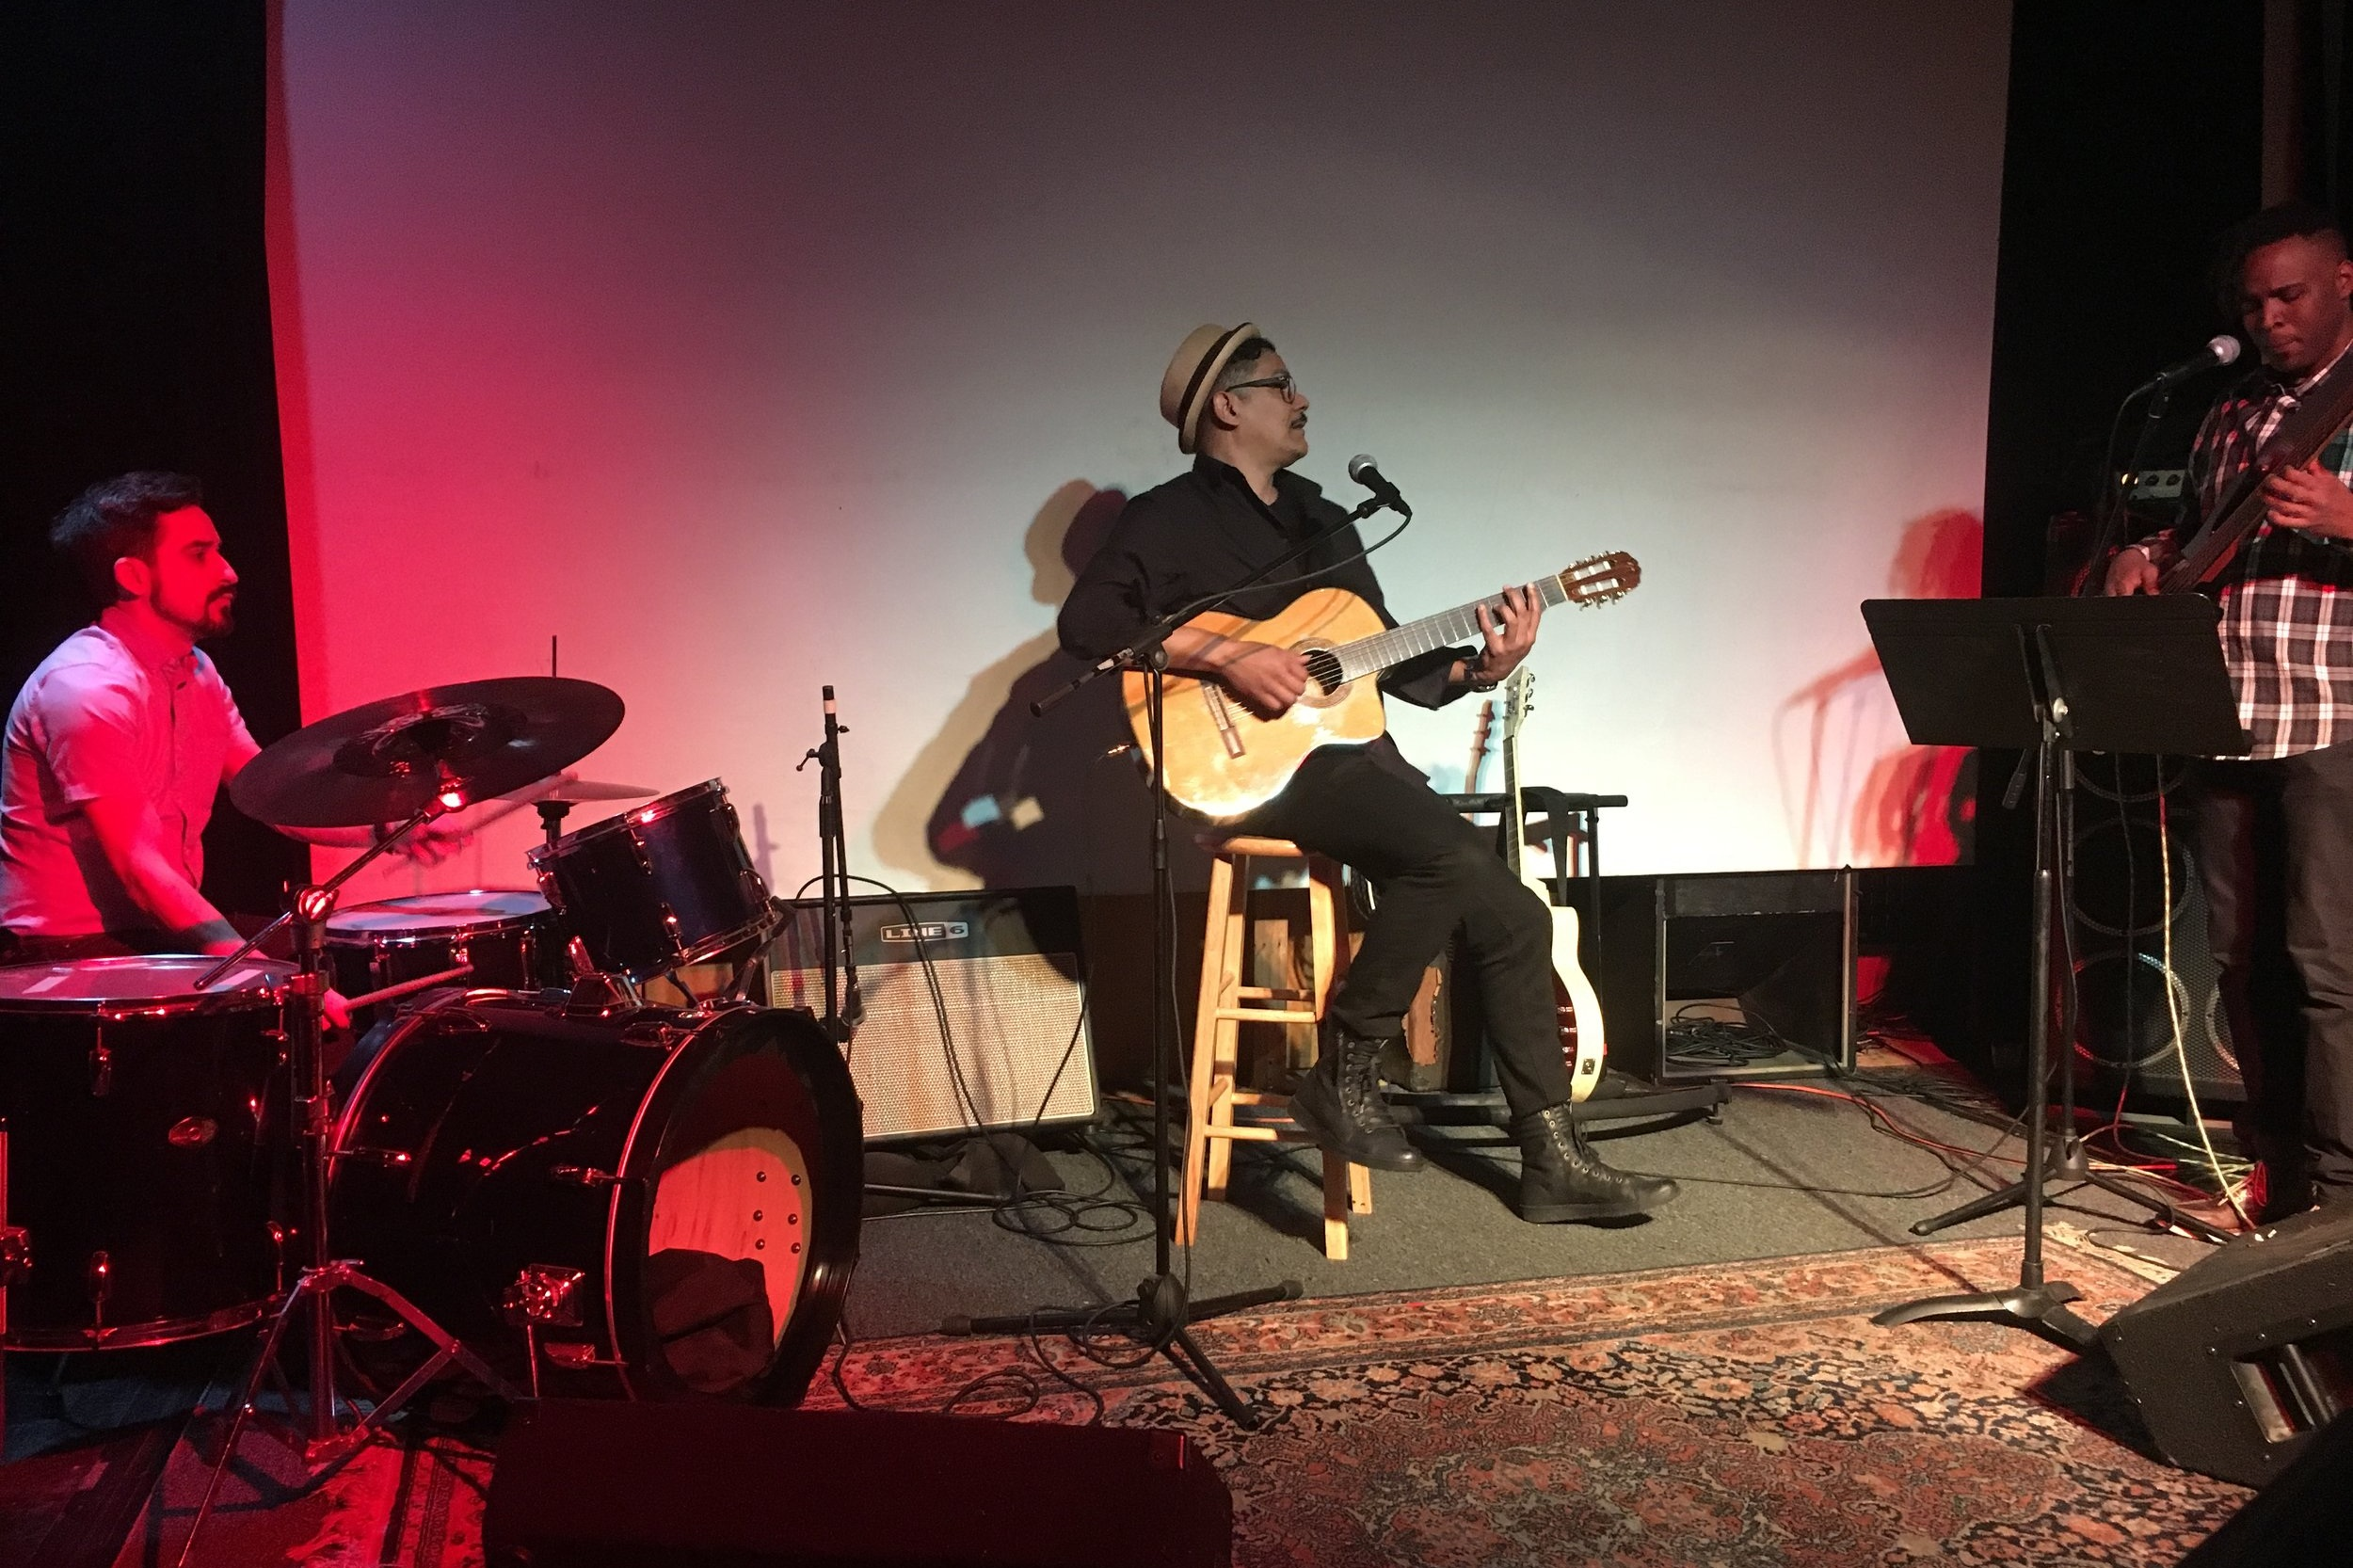 Loci Outing at Frost Theatre - May 17, 2019Team Loci attended the Troubadour of Brooklyn event at Frost Theatre of the Arts in Brooklyn to see our Office Manager Layton Weedeman perform with Roberto Poveda and Loisel Machin Rodriguez for an evening of Cuban bolero and soul music.